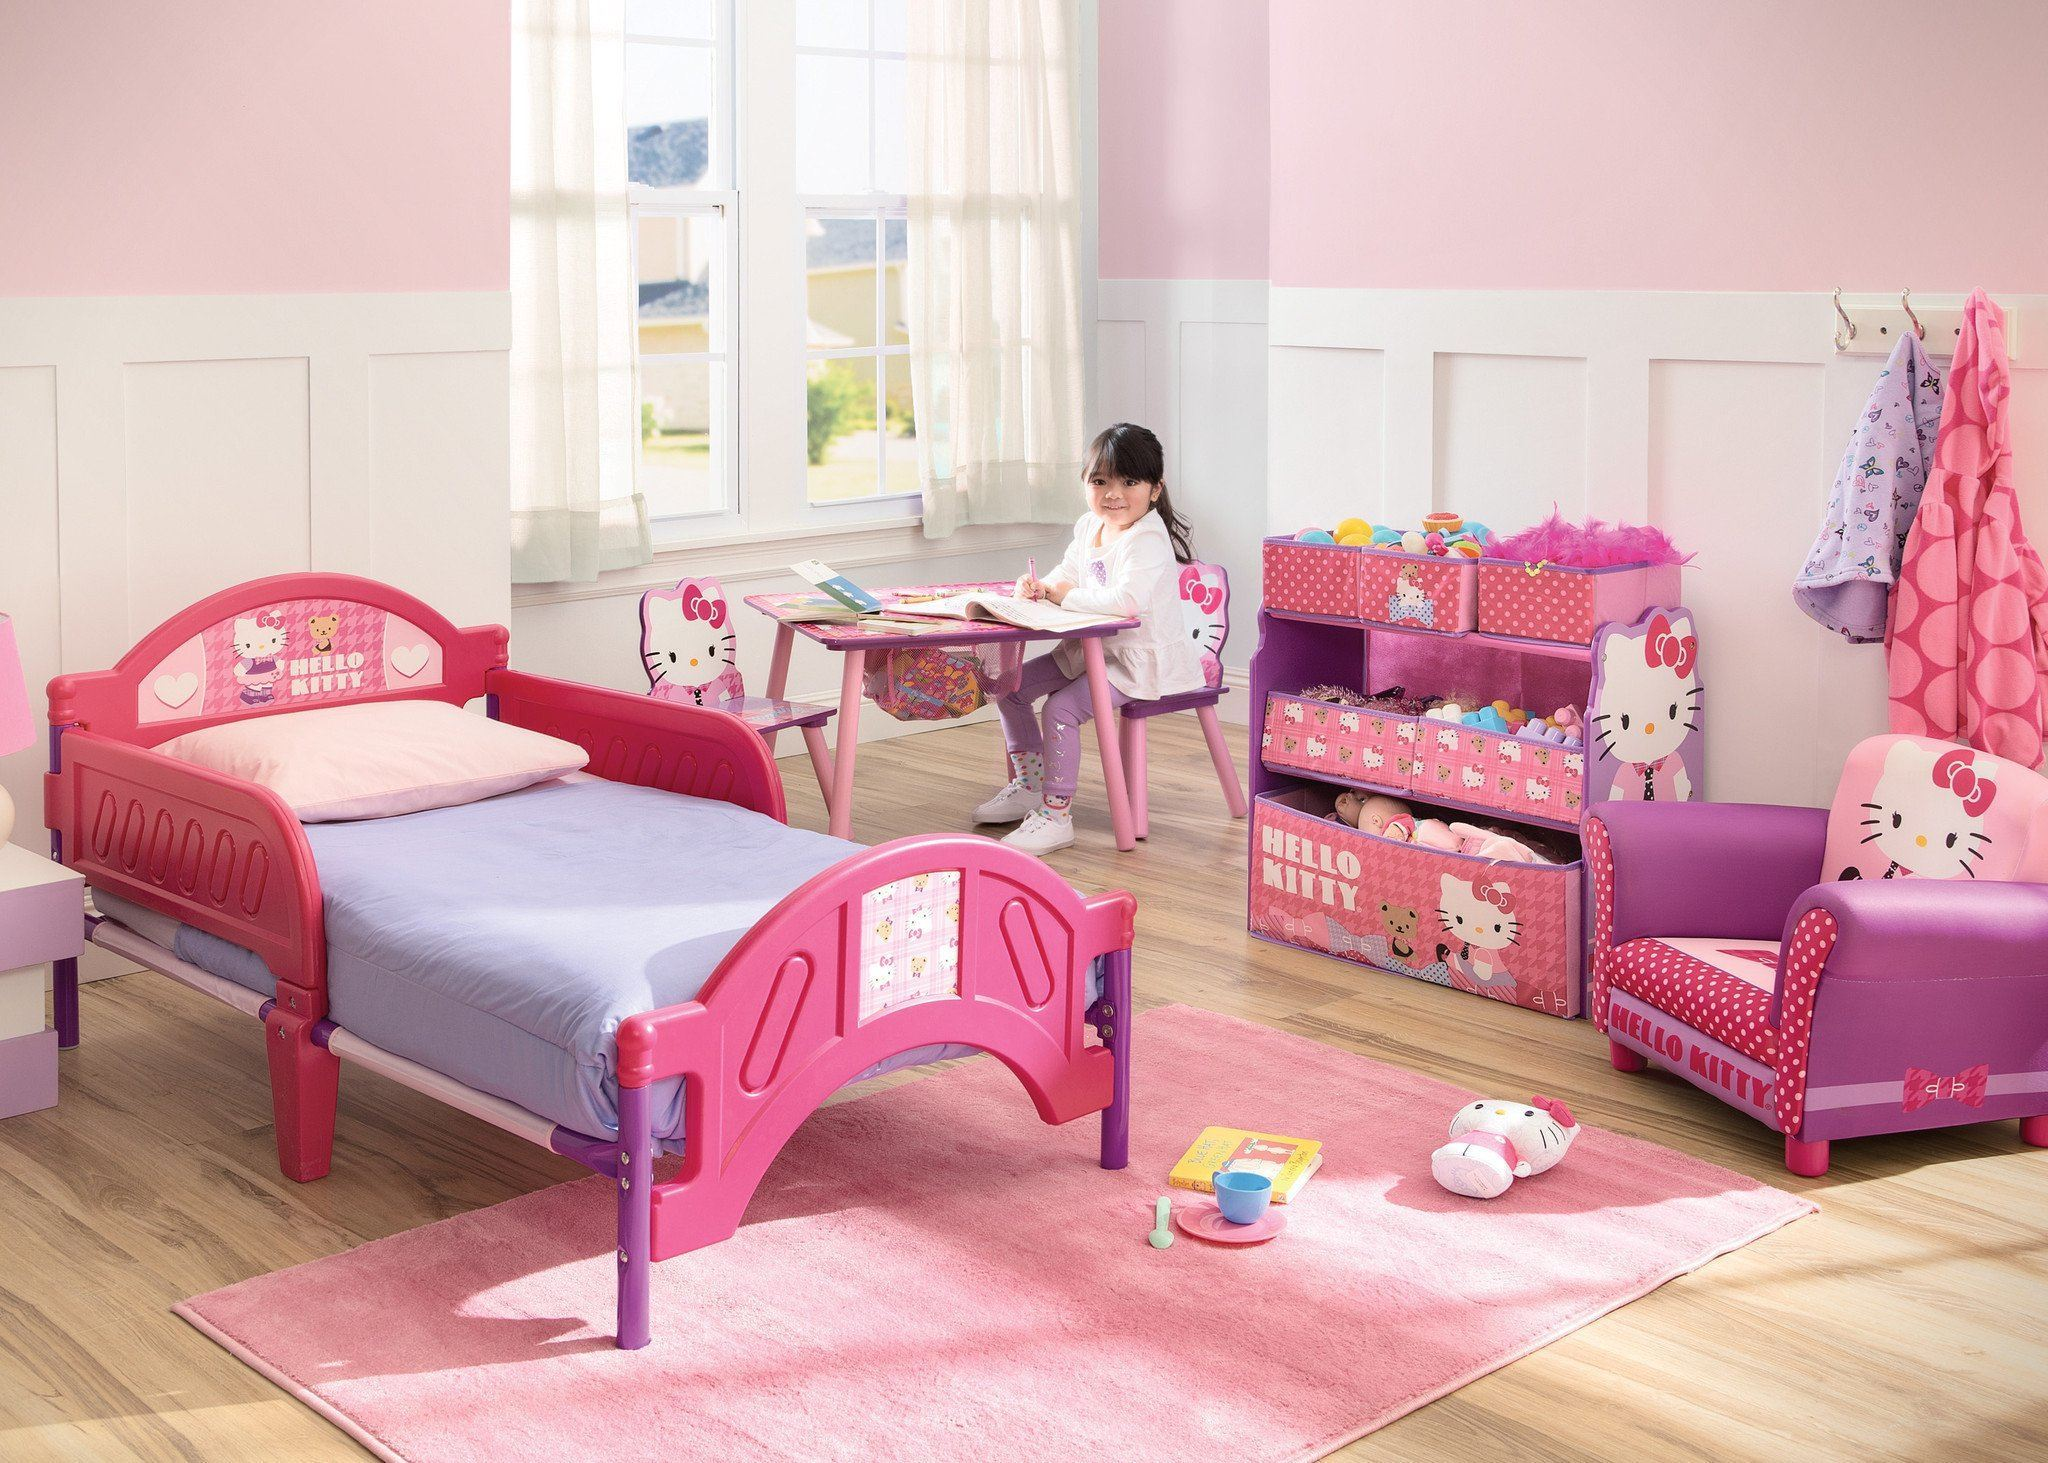 Delta Children Hello Kitty Fuchsia Plastic Toddler Bed Right Side View B1b Room B0b